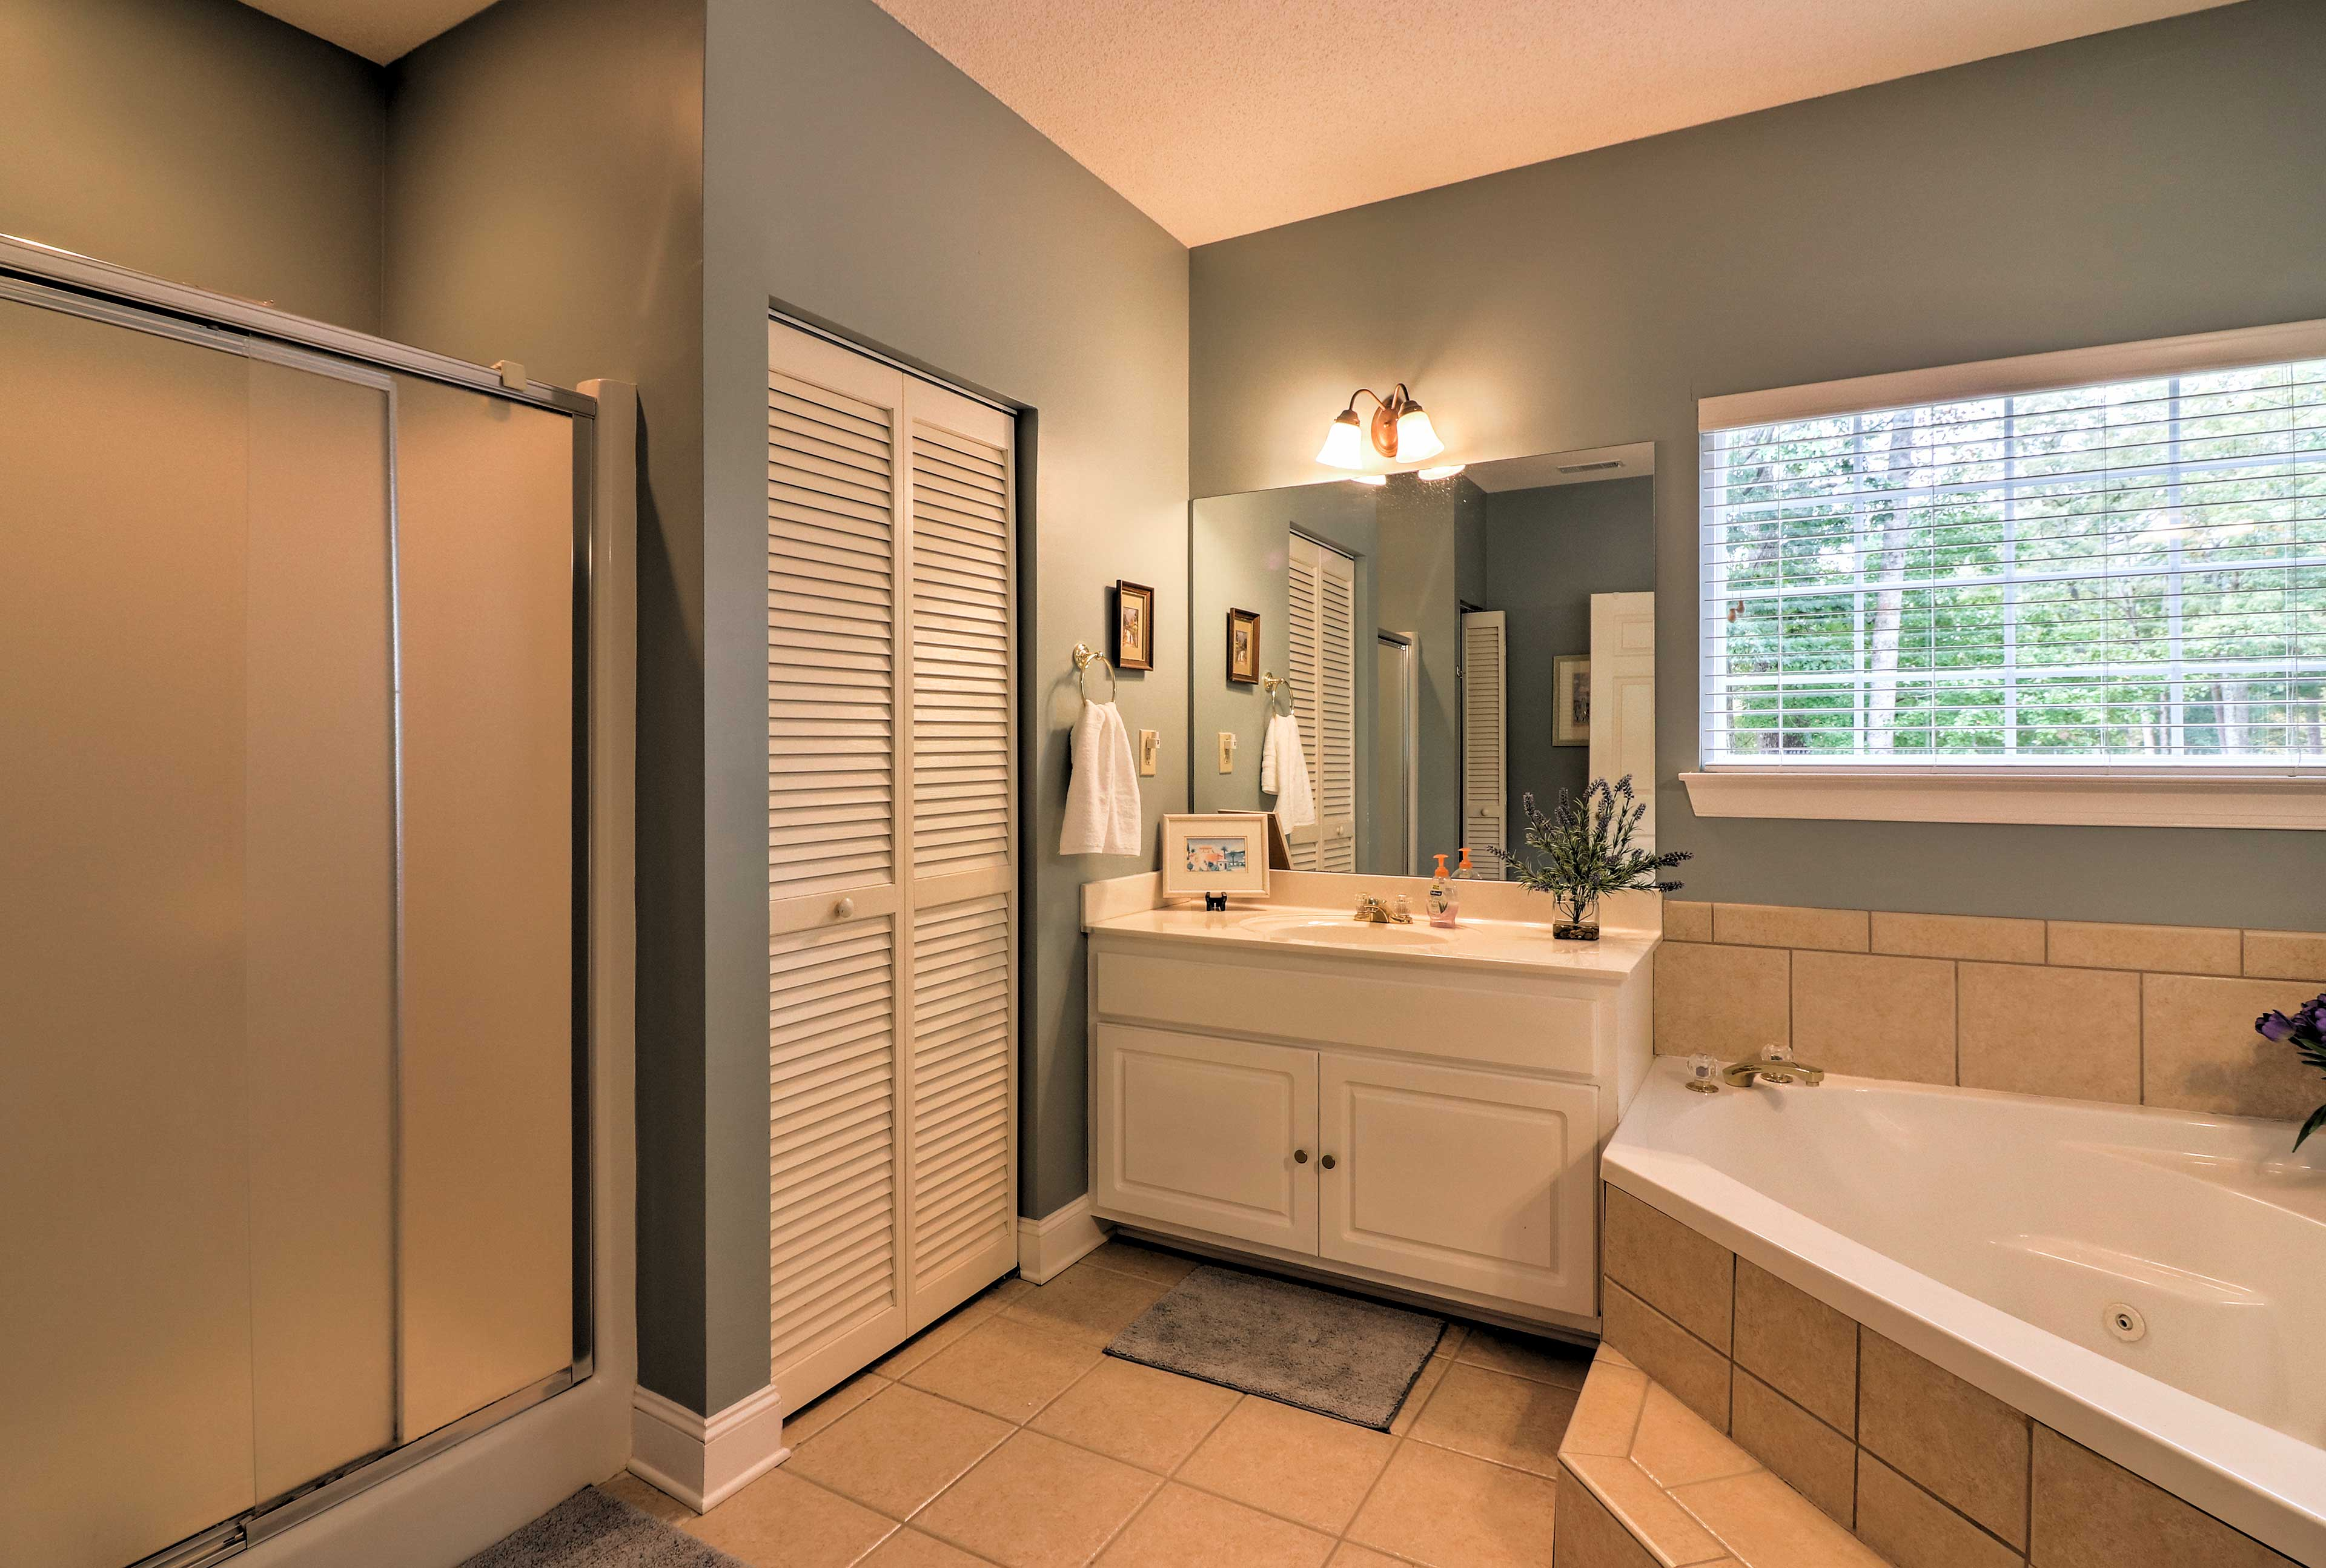 The en-suite master bathroom offers a walk-in shower and a separate tub.